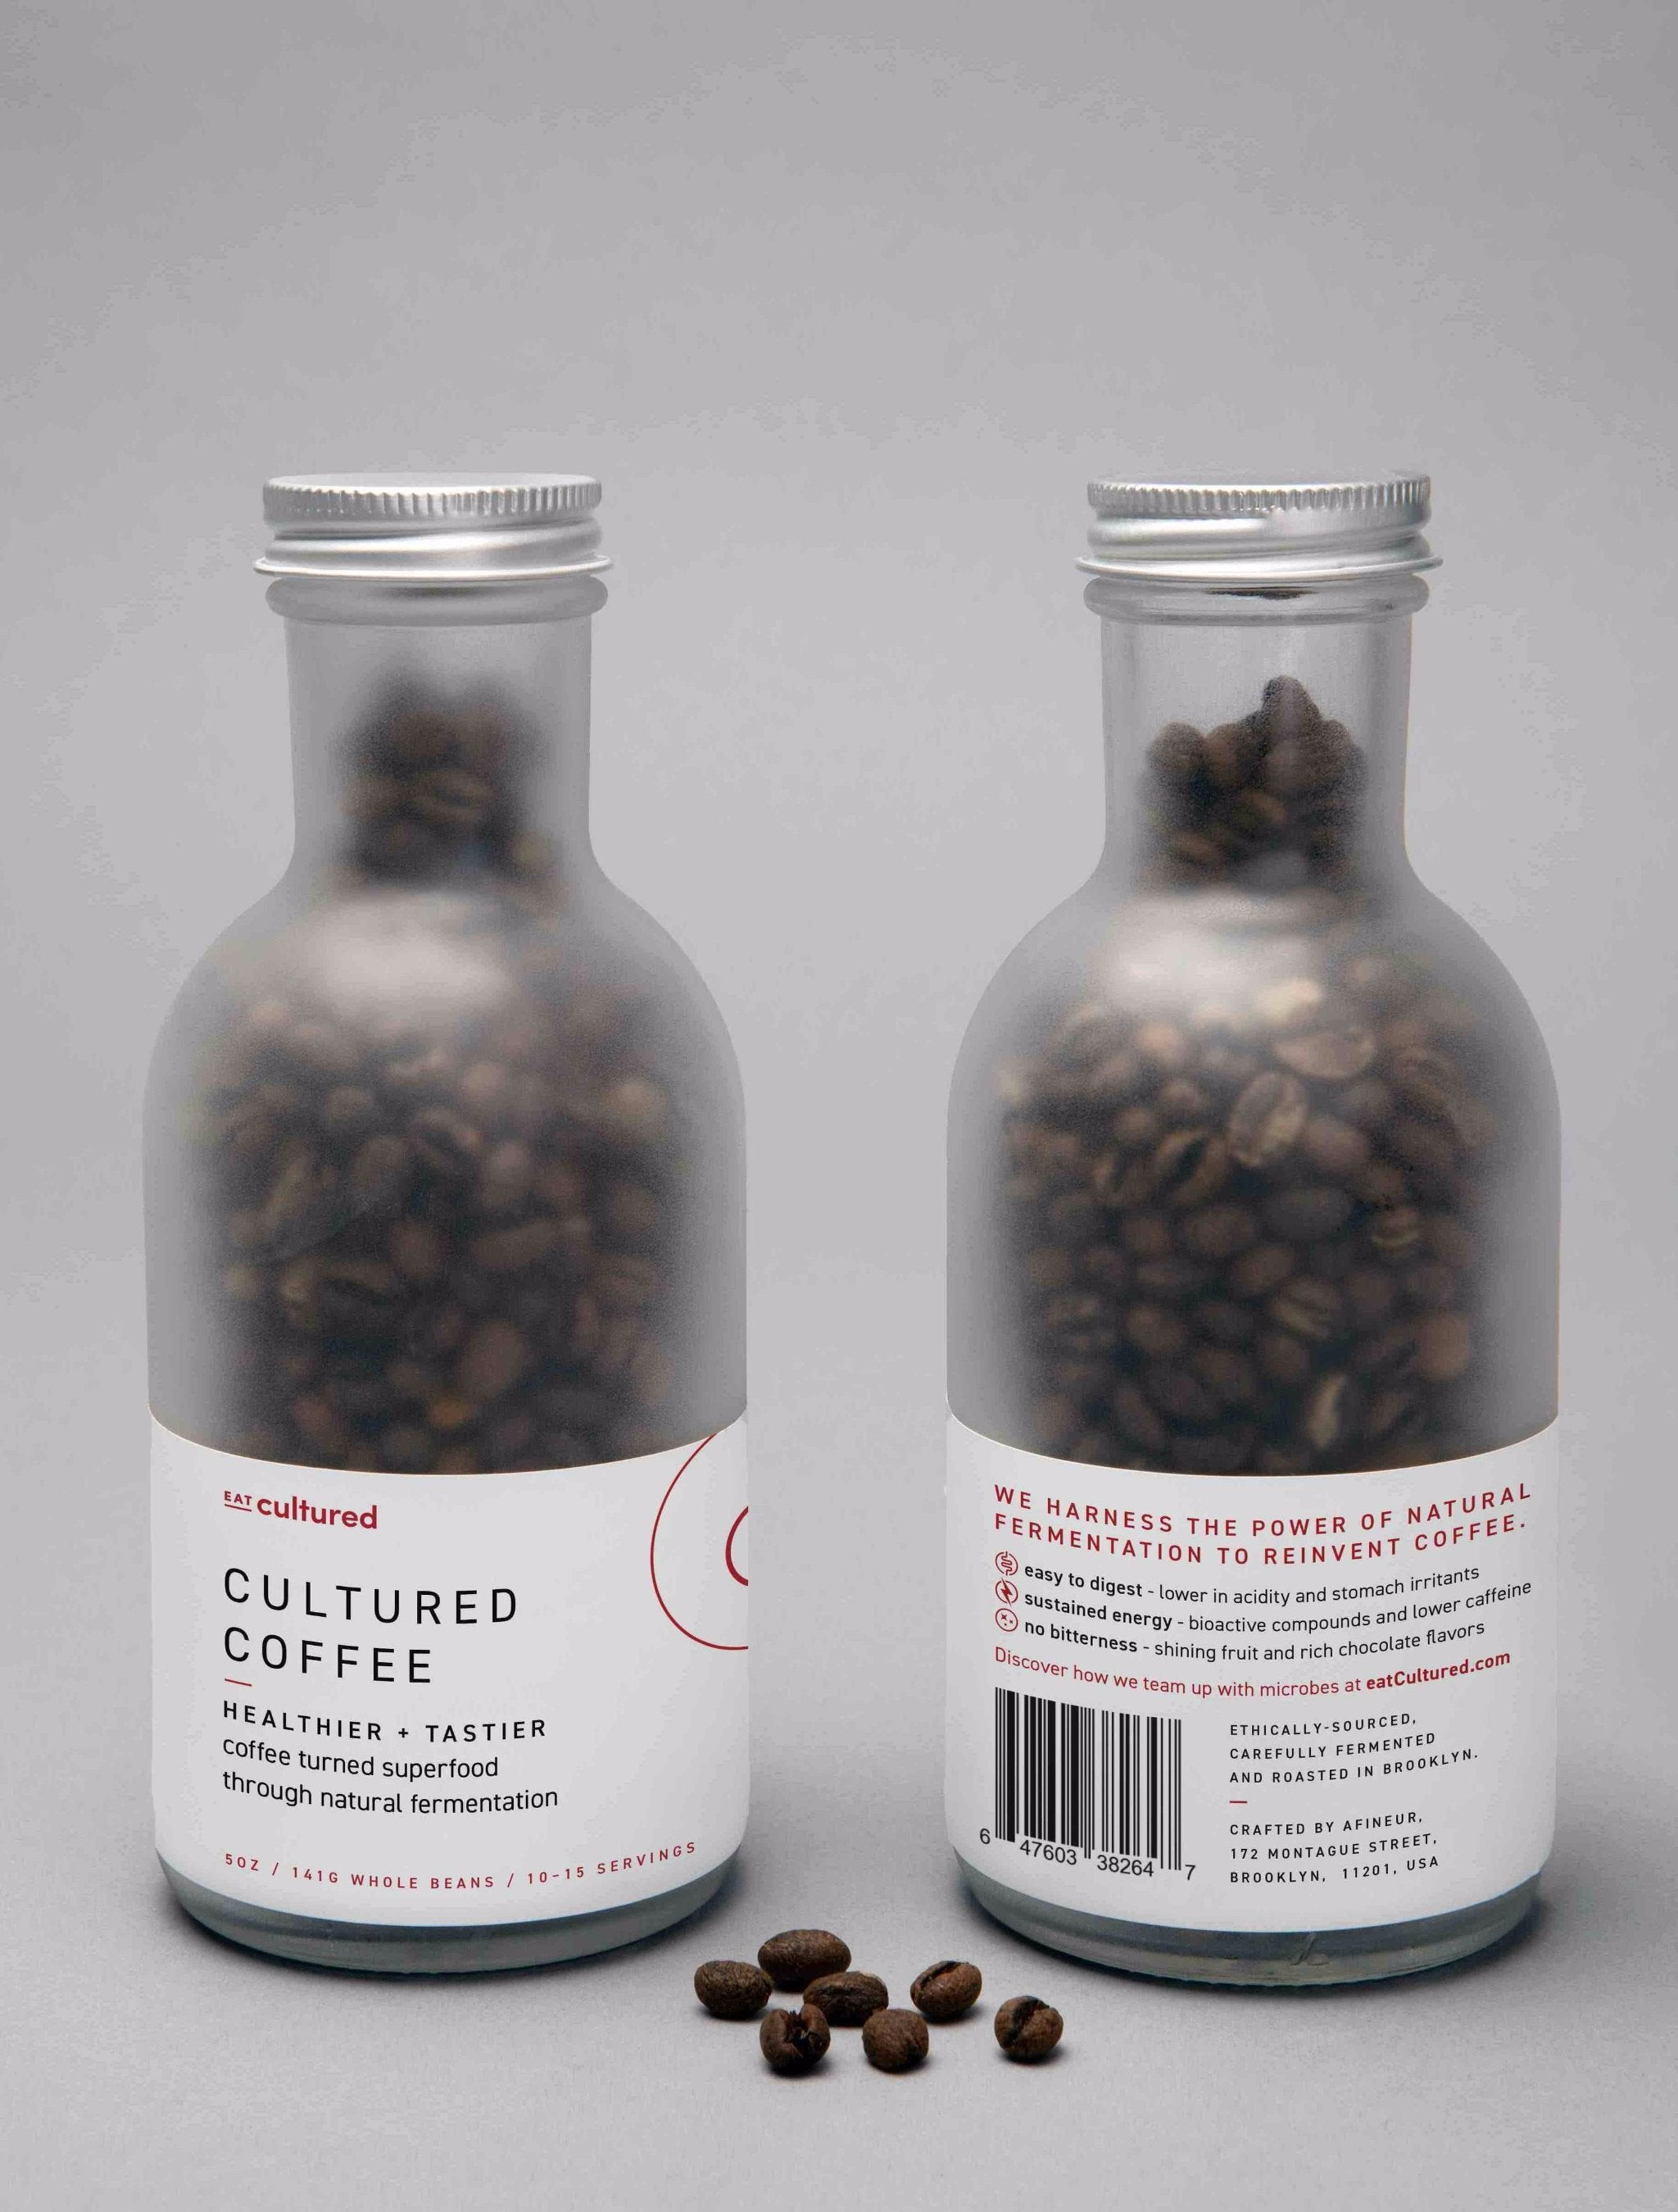 Cultured Coffee - Whole Beans 5 oz bags (Bottle sold out at this time)